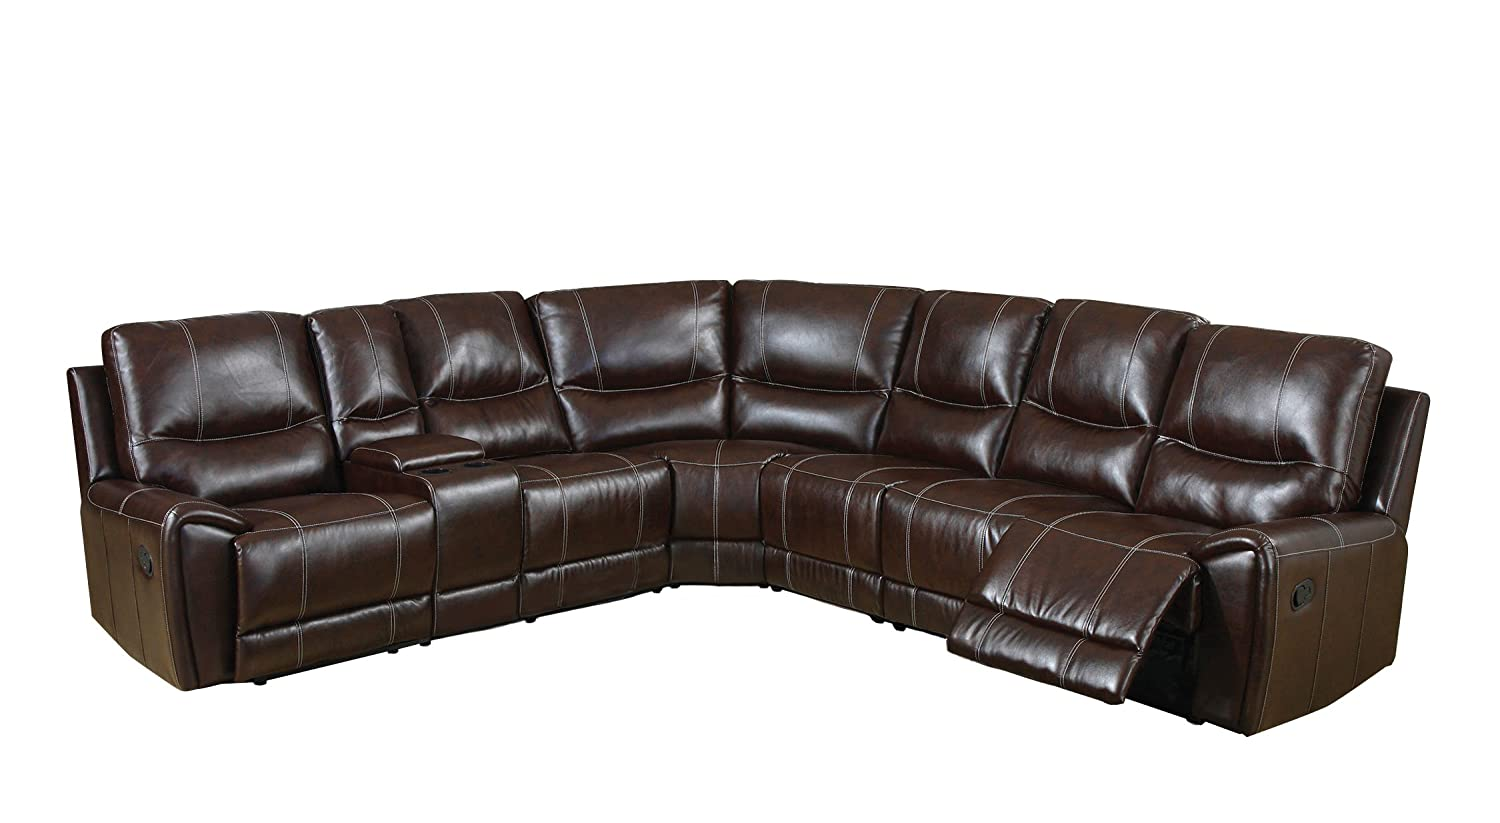 amazoncom furniture of america reeden bonded leather match sectional sofa with 3 recliners brown kitchen u0026 dining - Sectional Leather Sofas